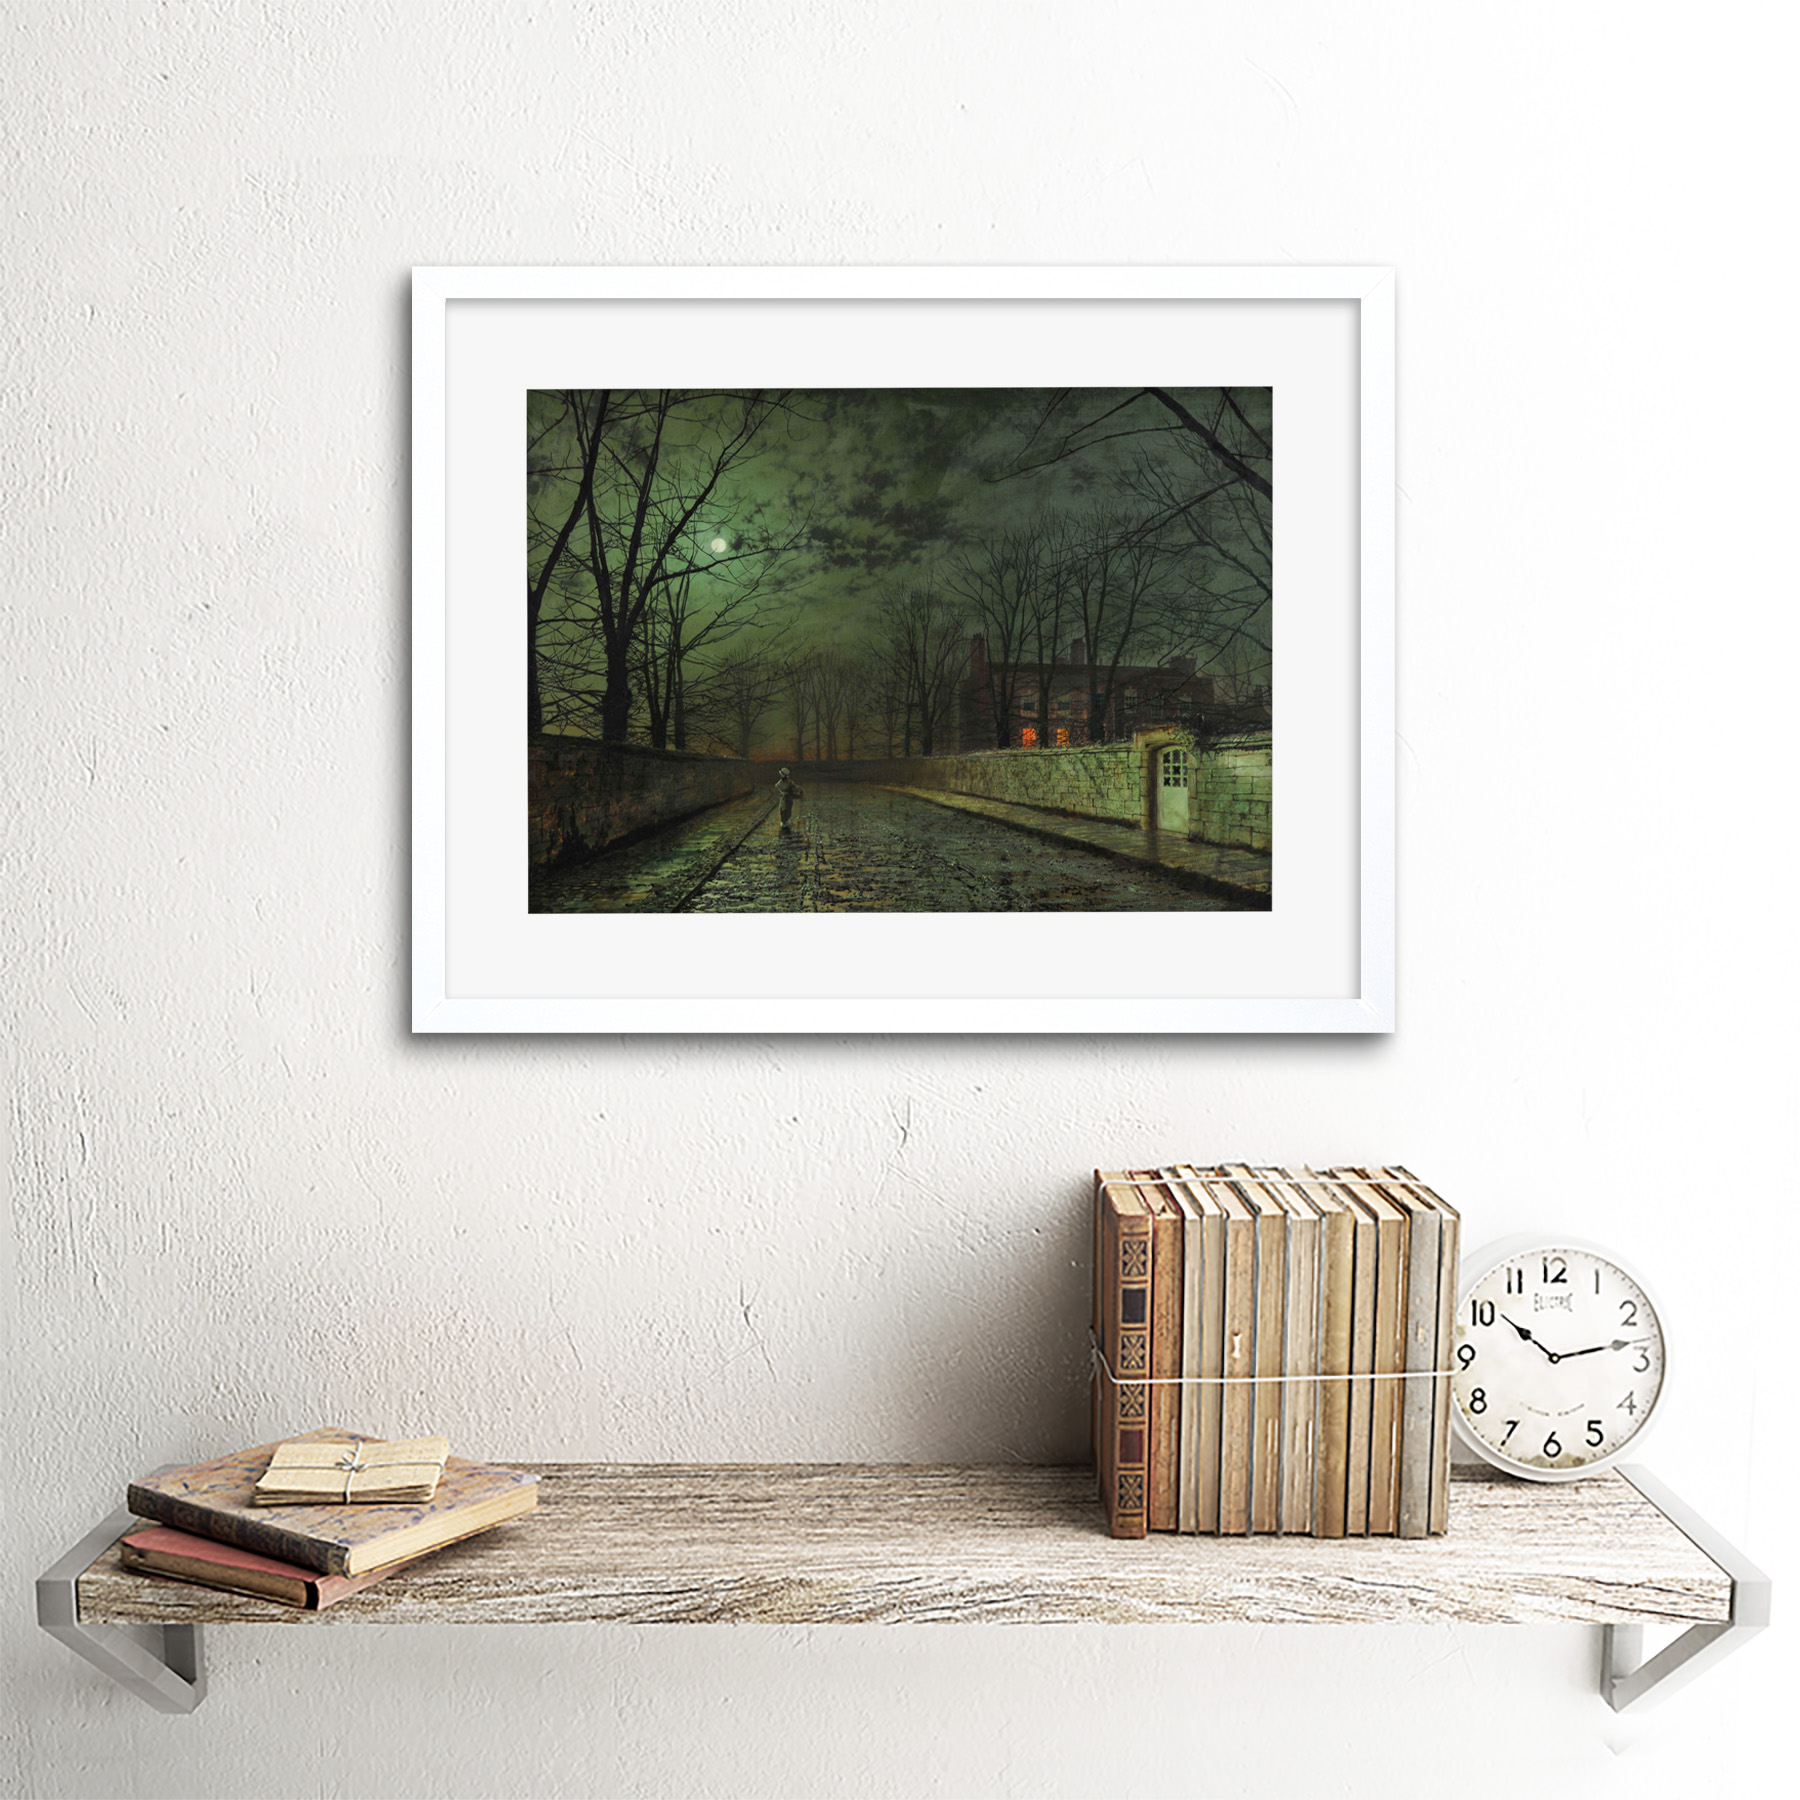 thumbnail 22 - Grimshaw-Moonlit-Street-Painting-Framed-Art-Print-Picture-Mount-12x16-Inch